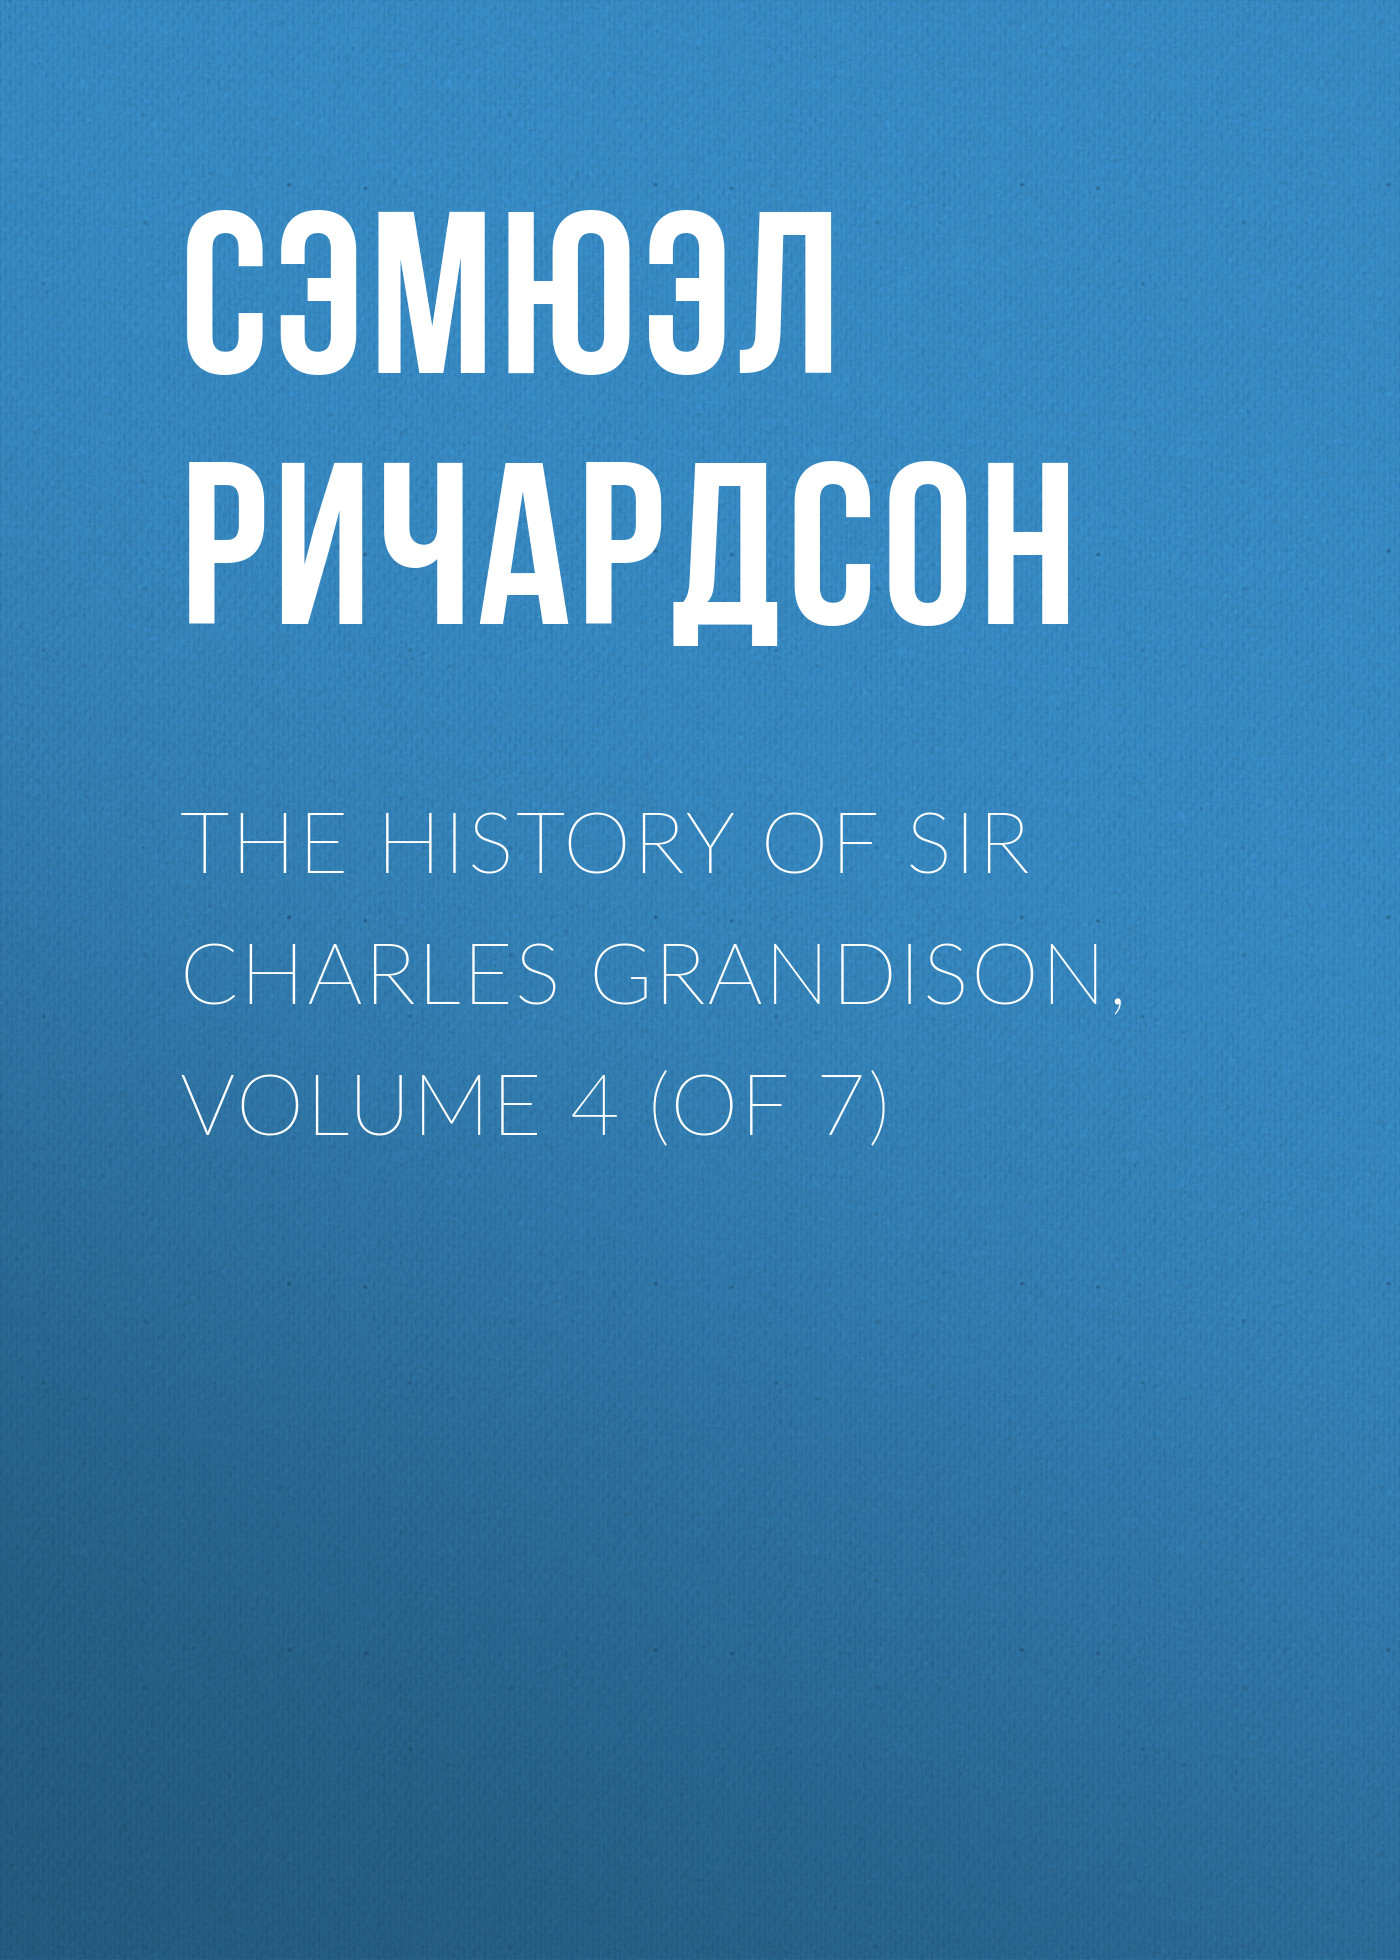 Фото - Сэмюэл Ричардсон The History of Sir Charles Grandison, Volume 4 (of 7) m guizot history of richard cromwell and the restoration of charles ii volume 2